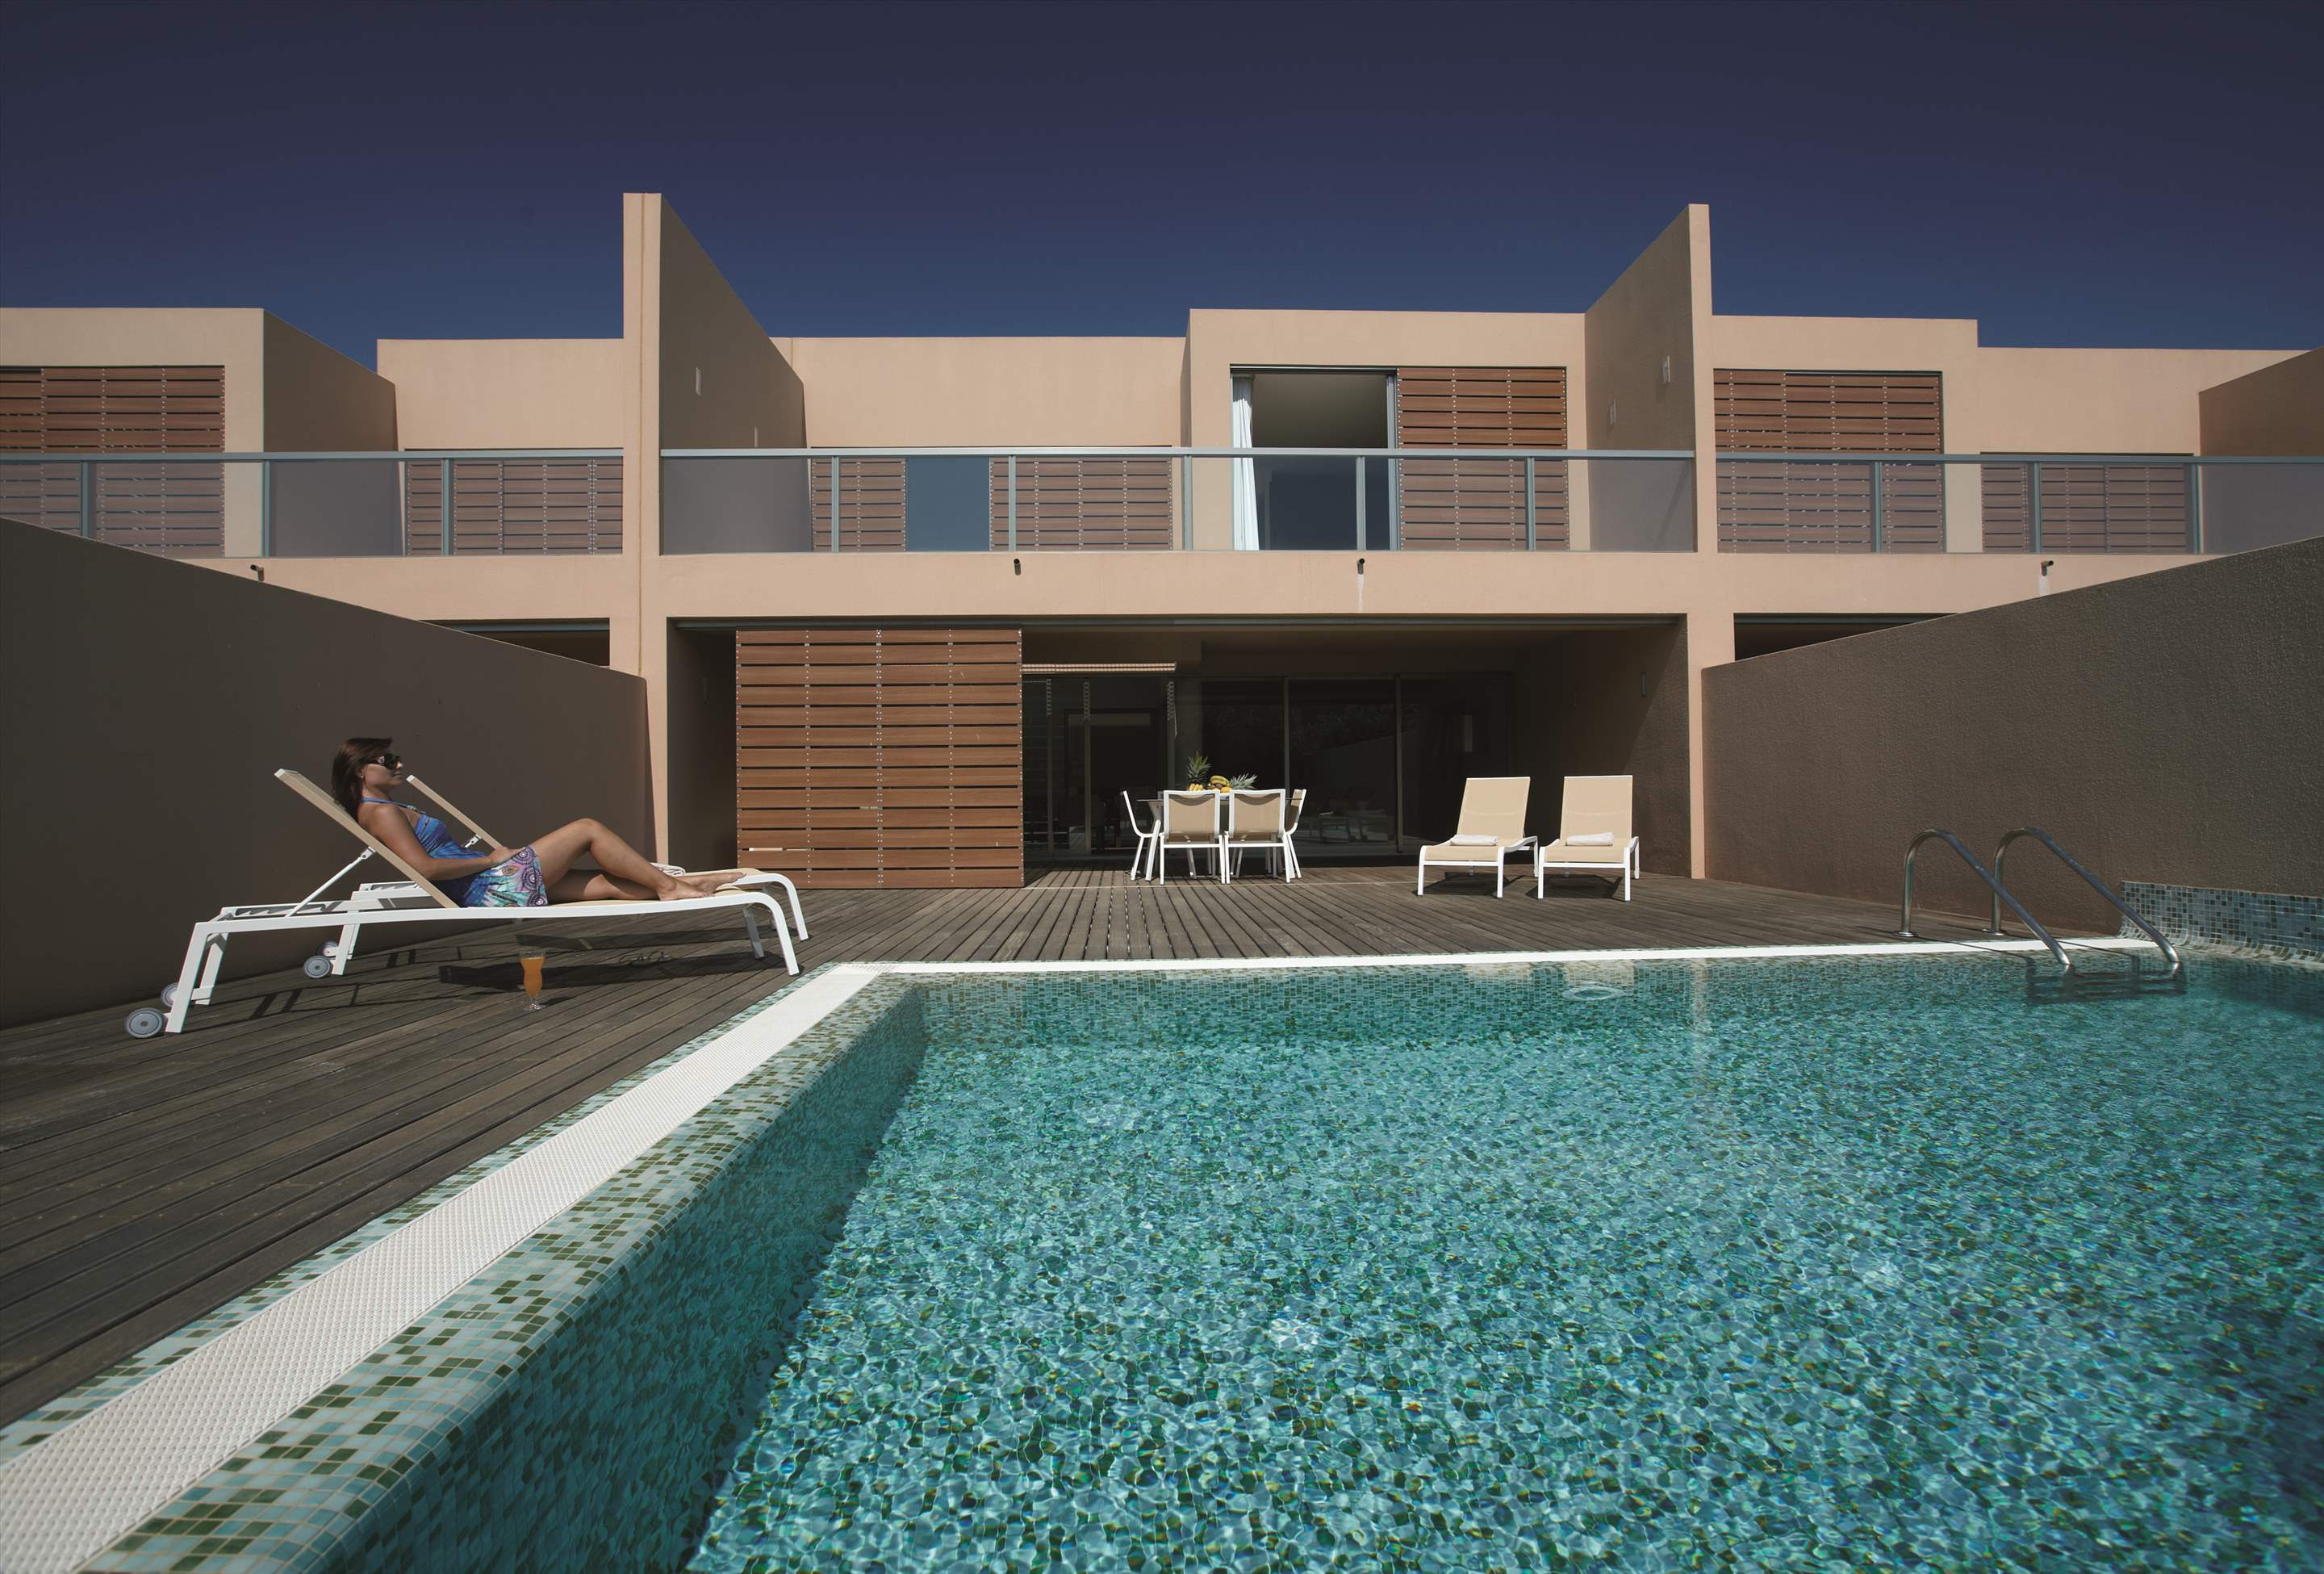 Salgados Beach Villas, 3 Bed, SC Basis, 3 bedroom villa in Vidamar Resort, Algarve